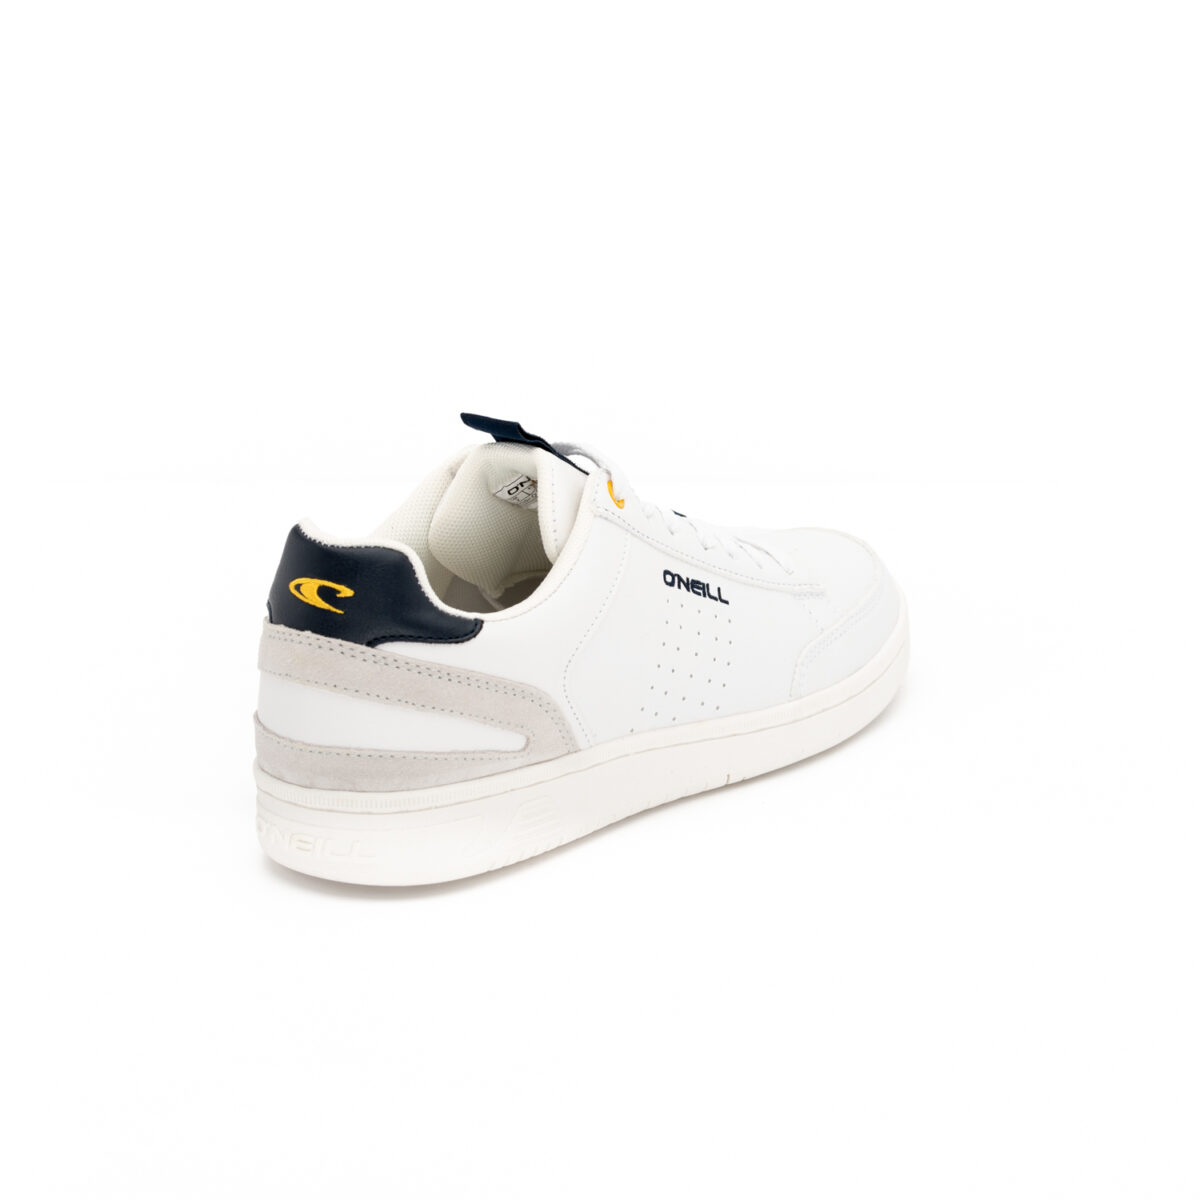 oneill white THE WEDGE 03